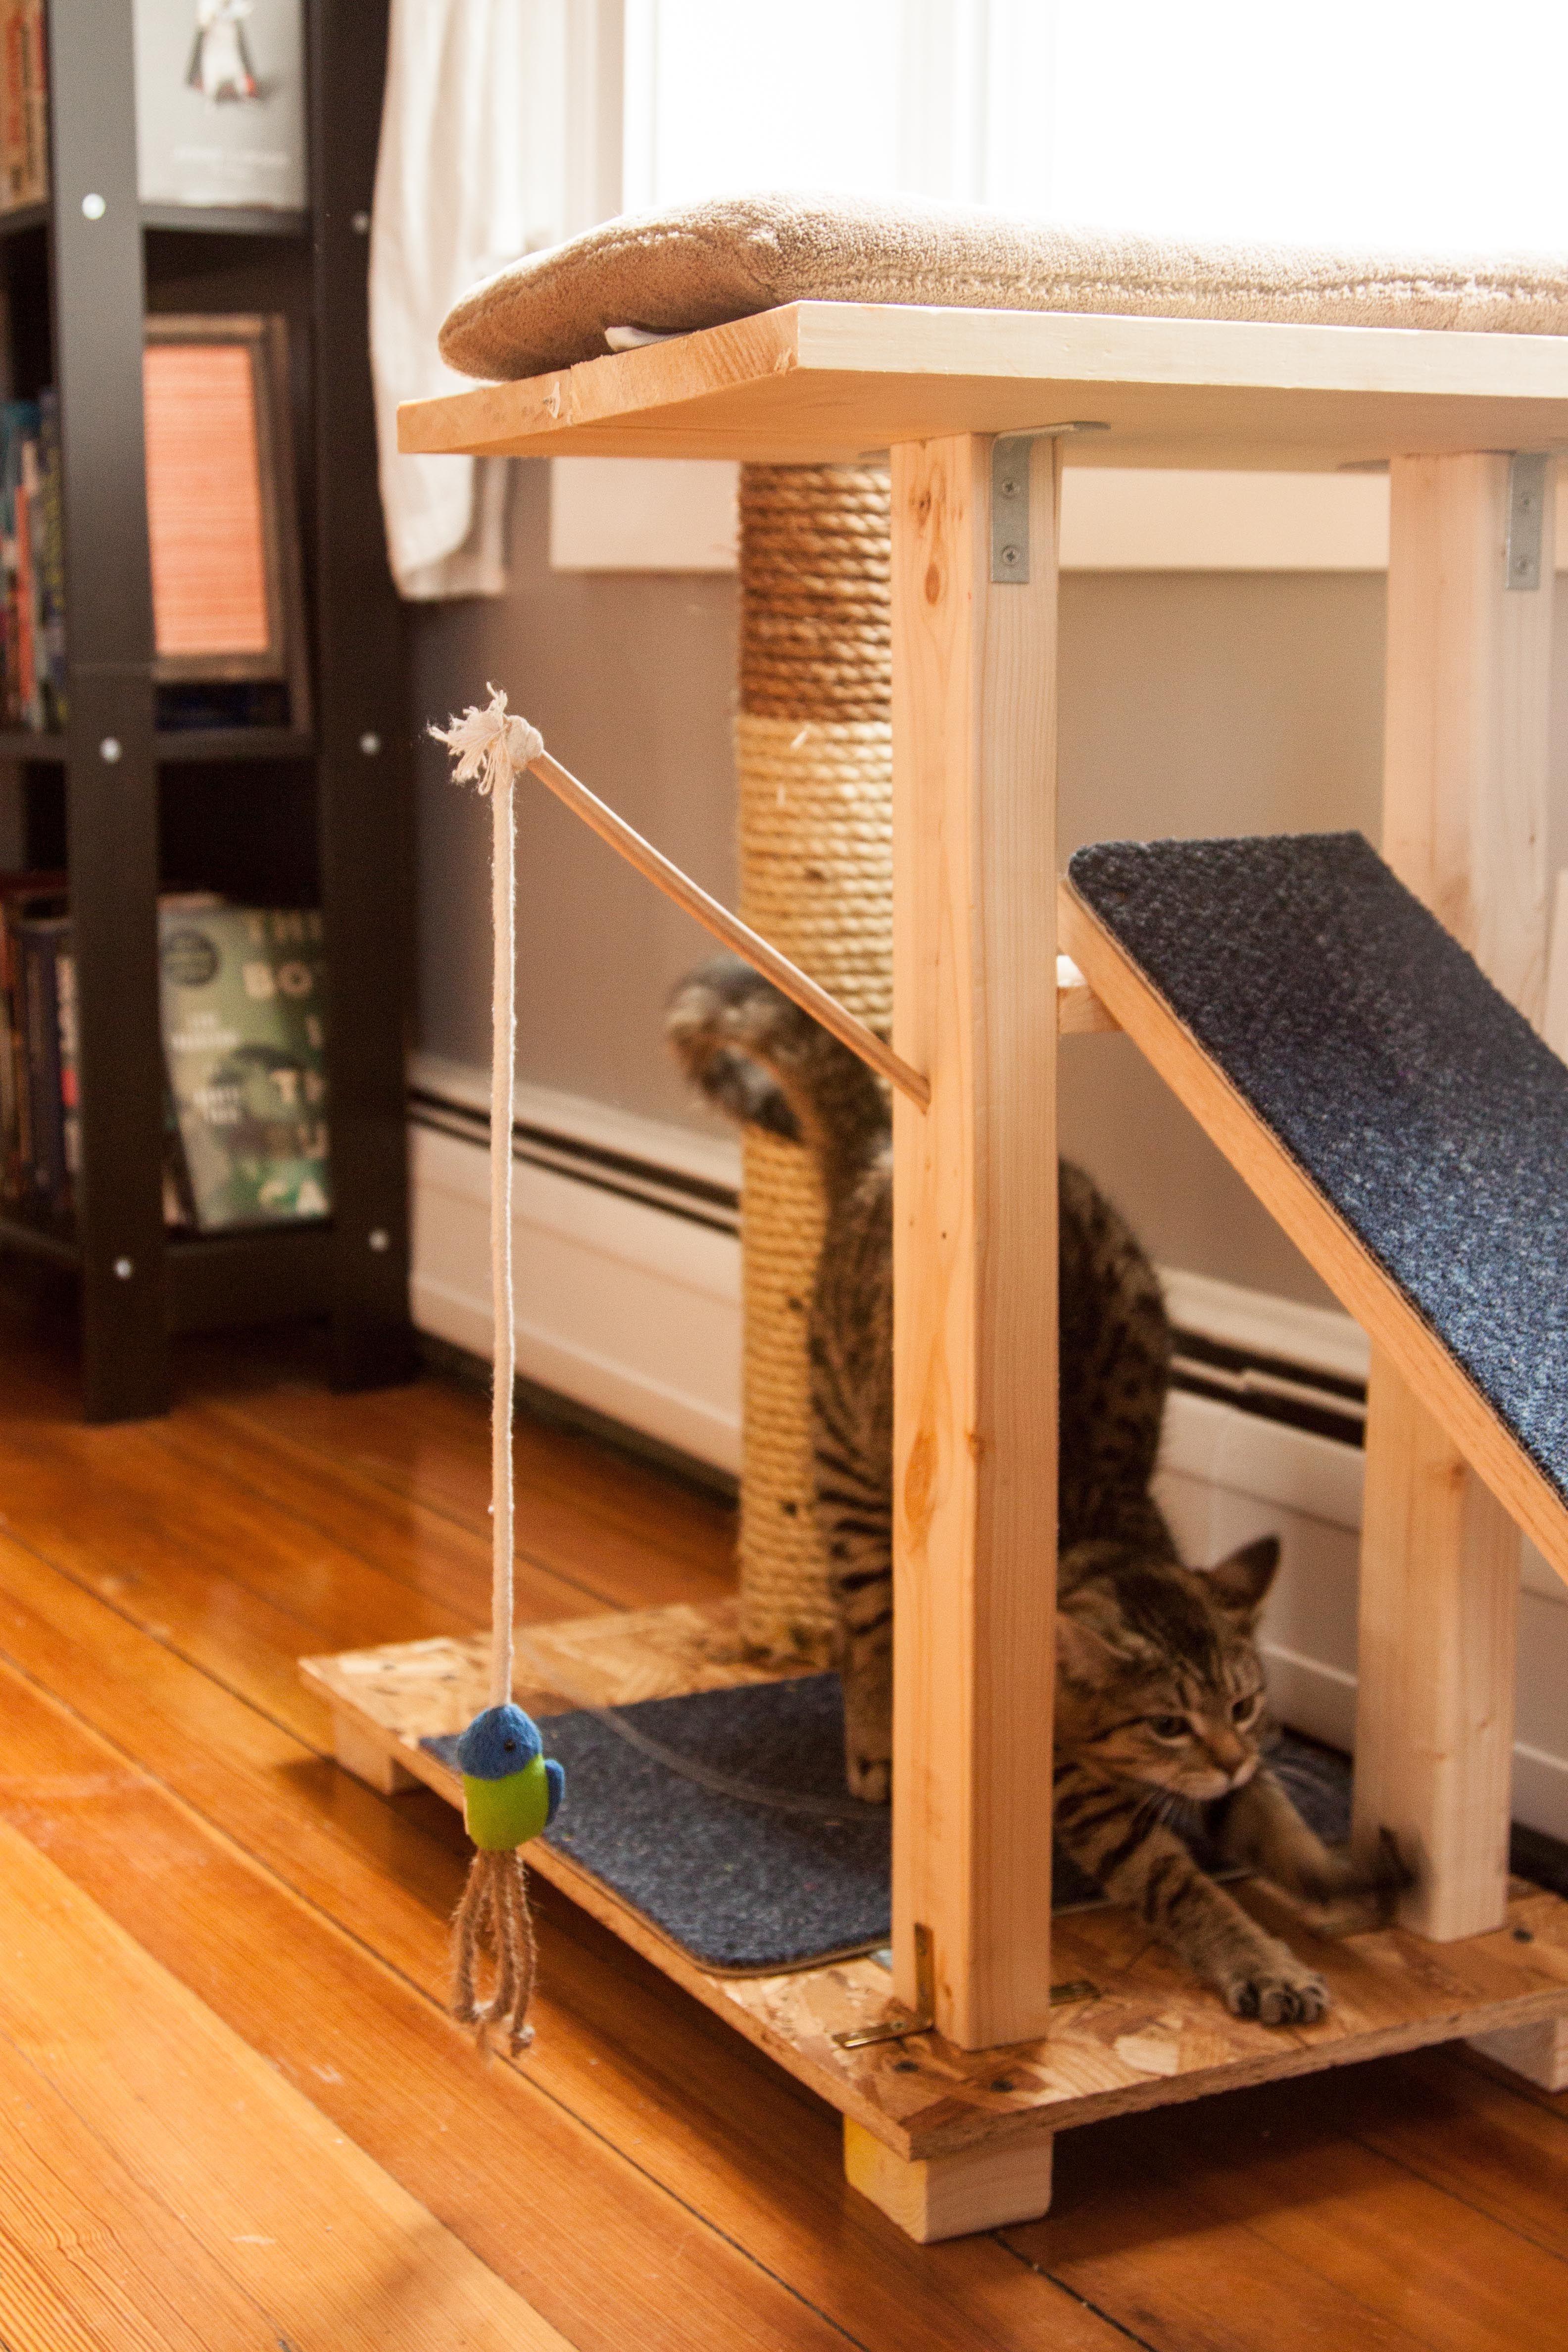 Catable Shared Table Lets Cats Play While Humans Work